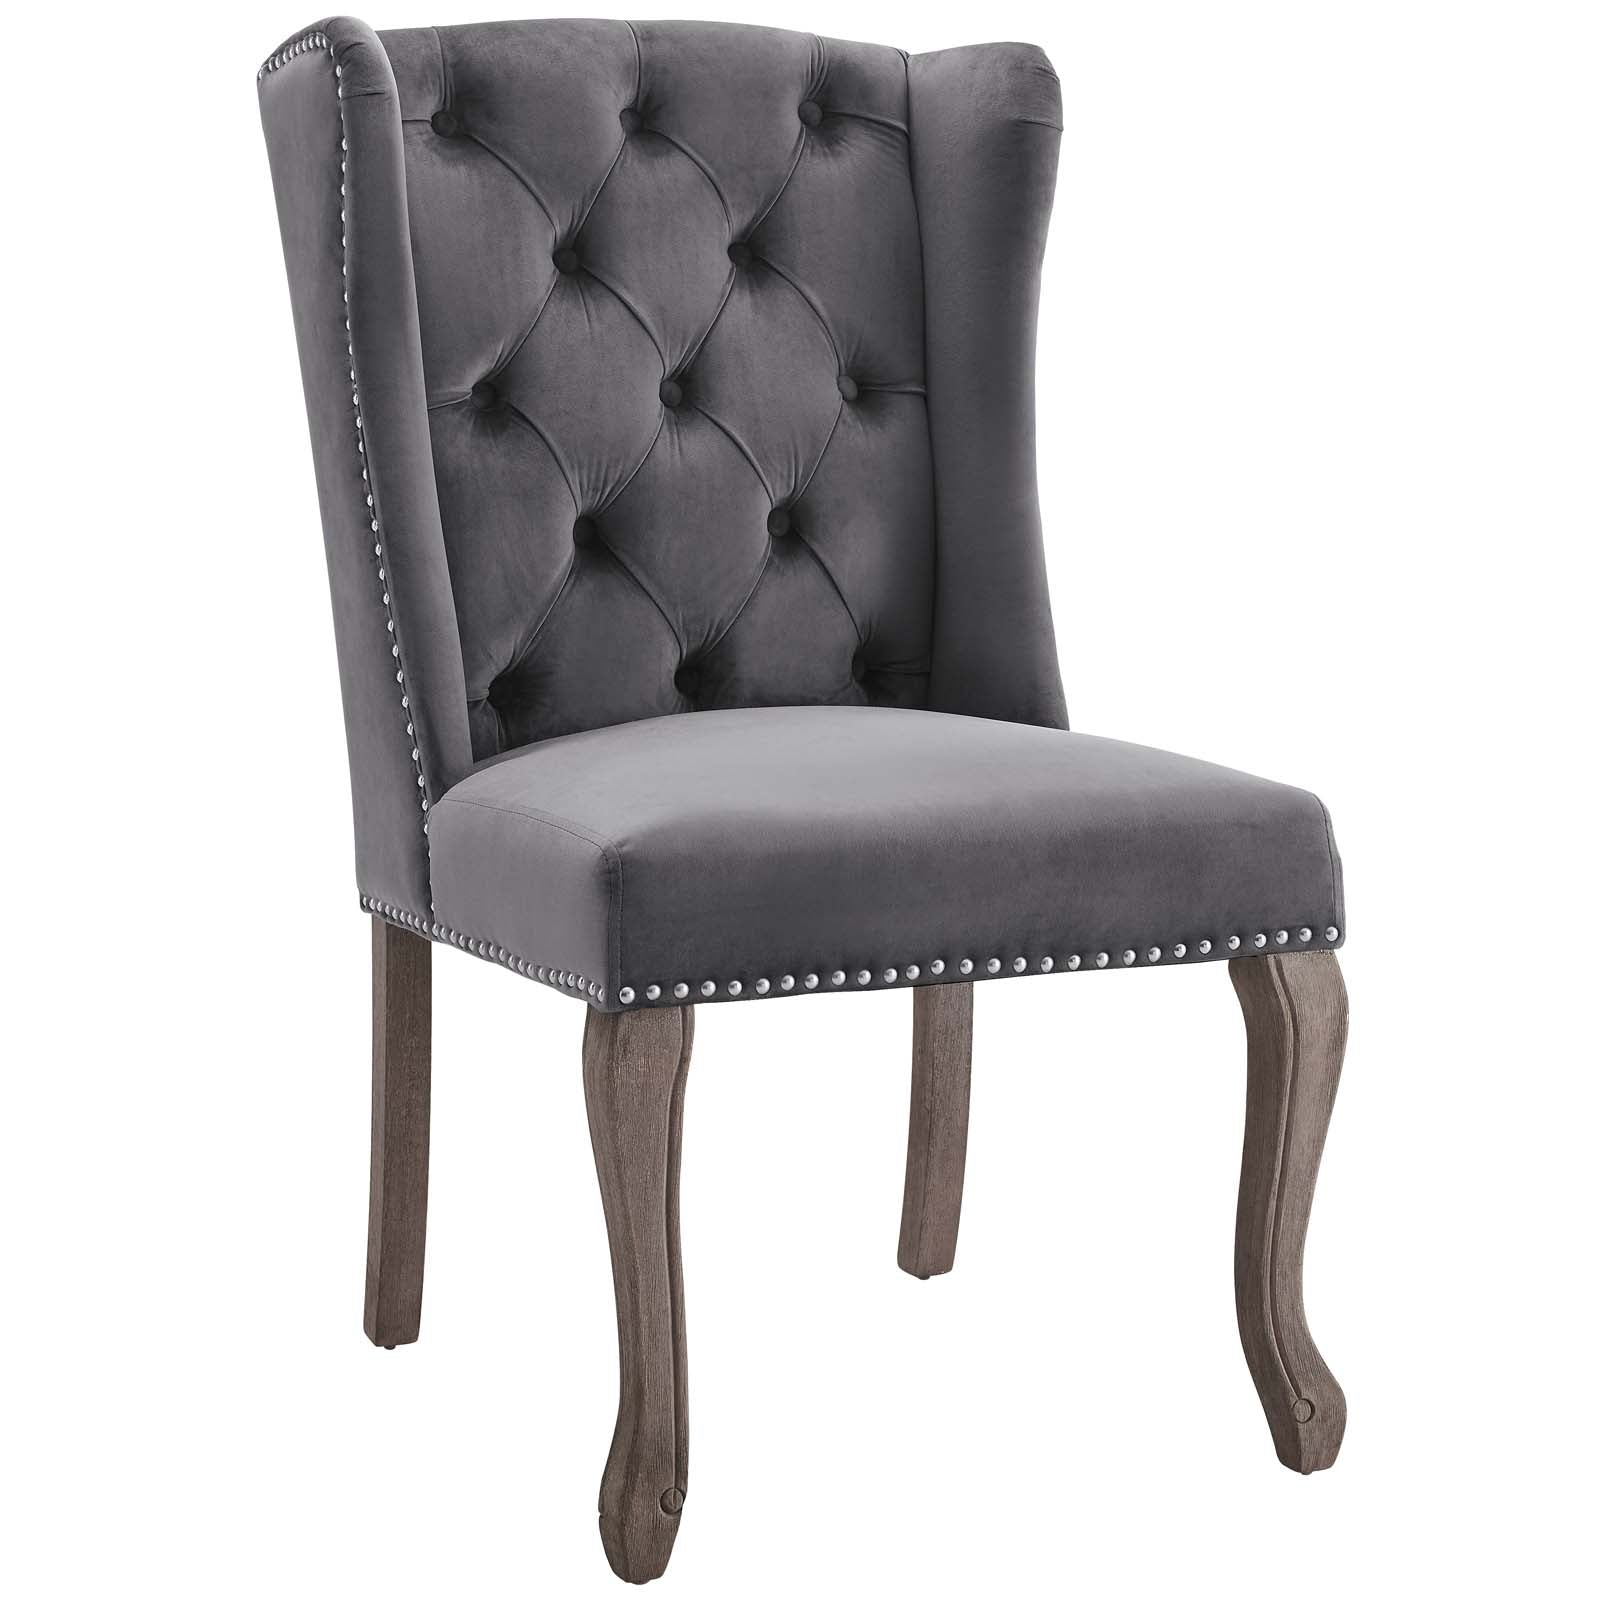 Cool Modway Dining Chairs On Sale Eei 3367 Gry Apprise French Vintage Dining Performance Velvet Side Chair Only Only 266 05 At Contemporary Furniture Alphanode Cool Chair Designs And Ideas Alphanodeonline